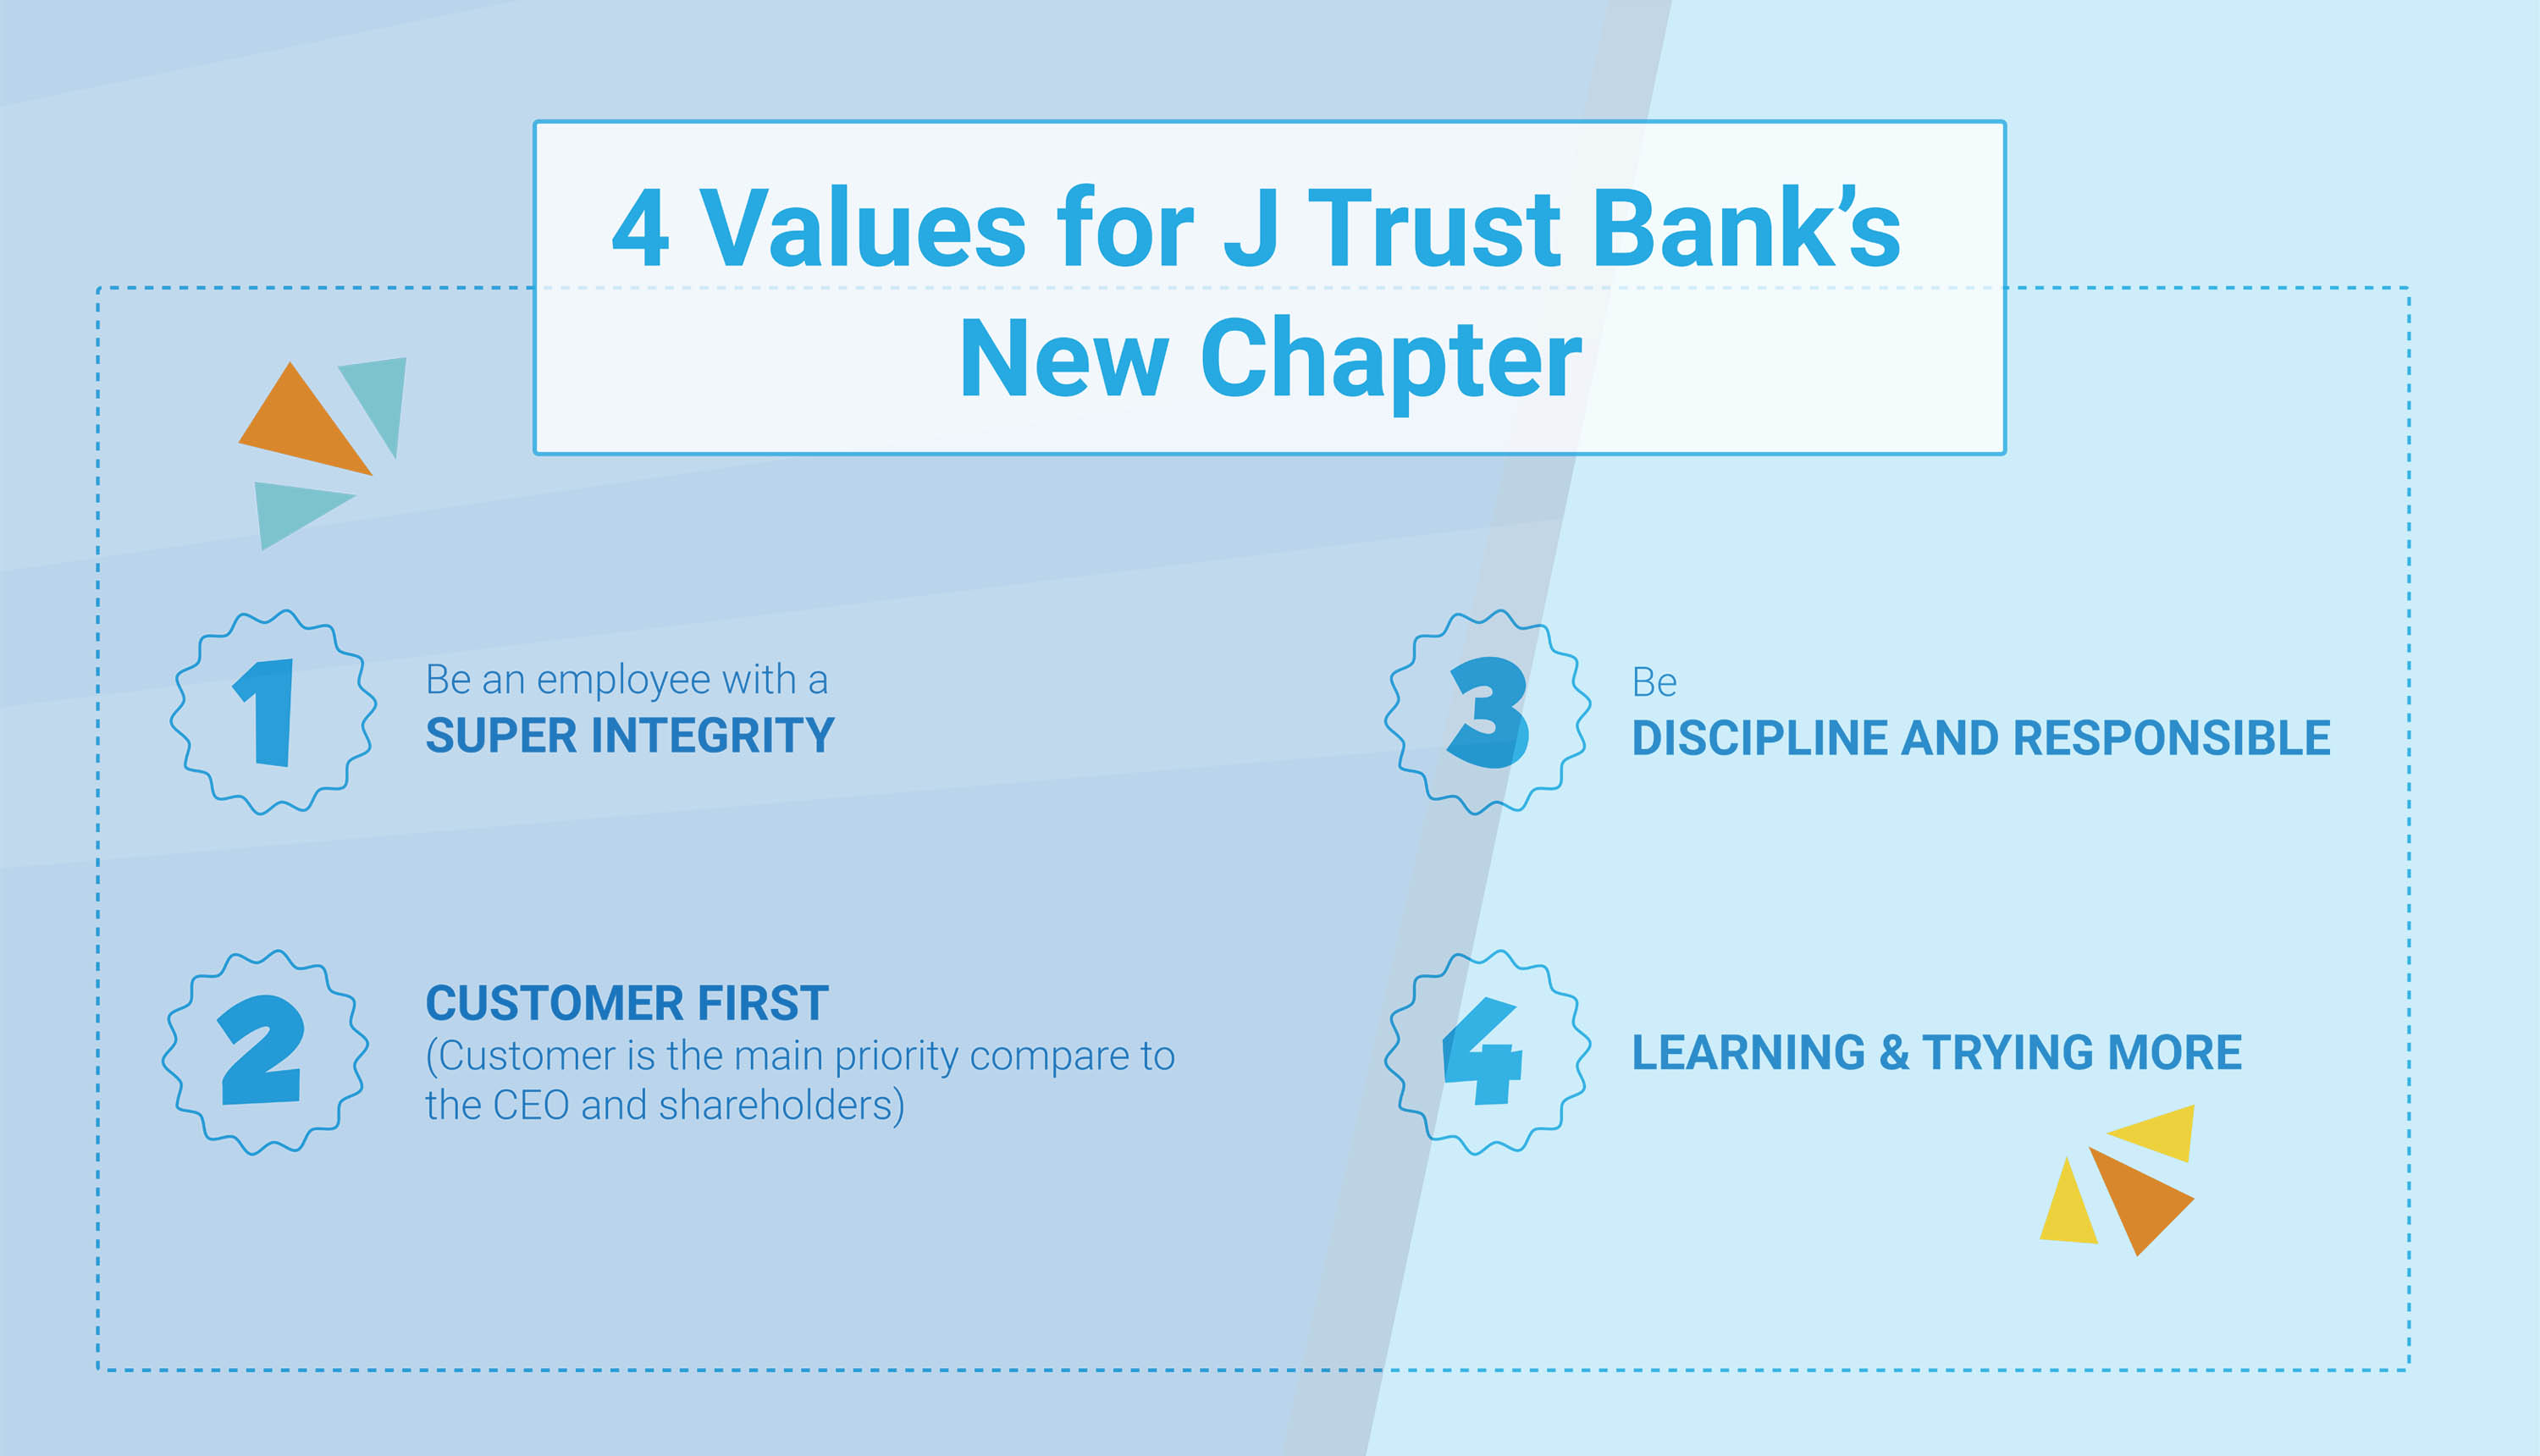 Super Integrity - Customer First - Discipline & Responsible - Learning & Trying More